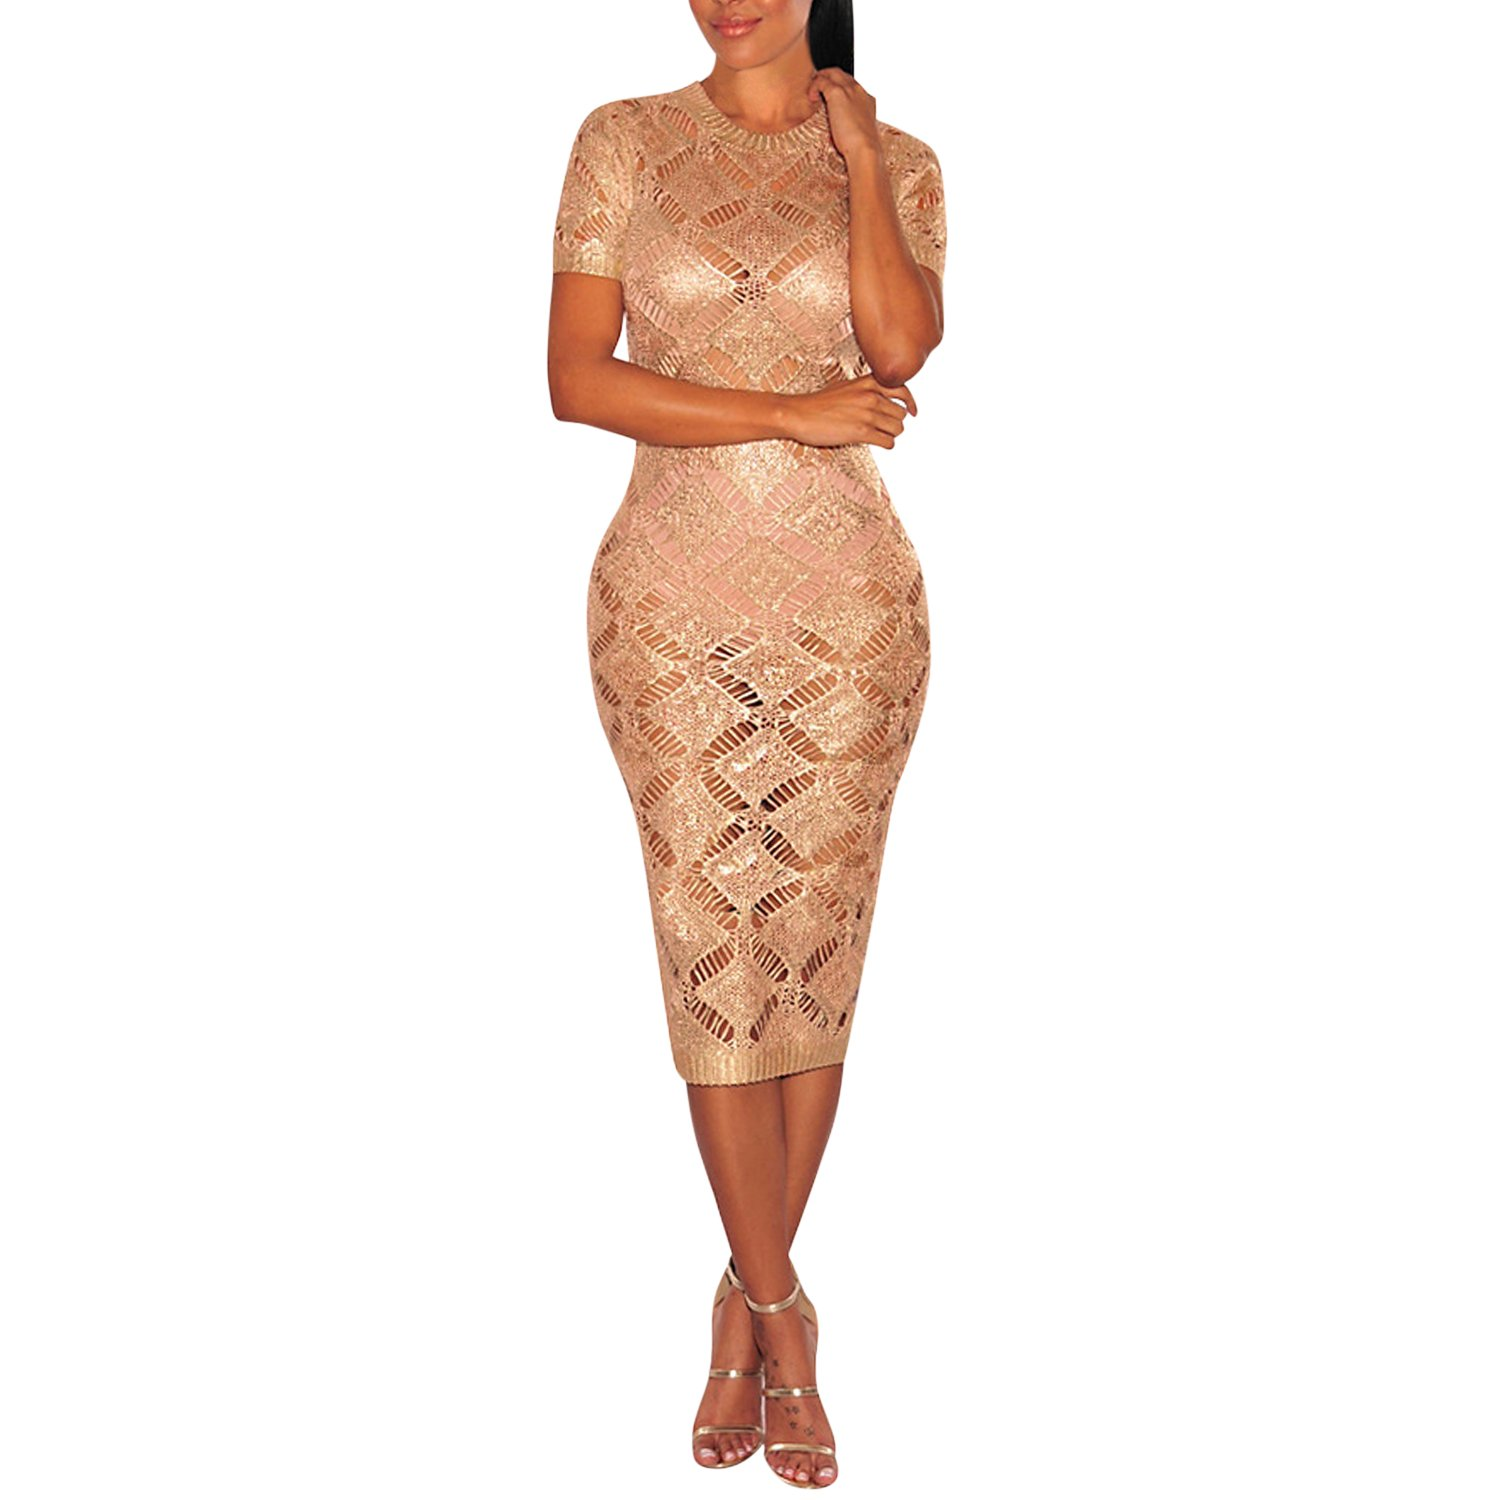 Misscat Women Skinny Hollow Dress Sexy Summer Crochet Knit Sheer Midi Dress